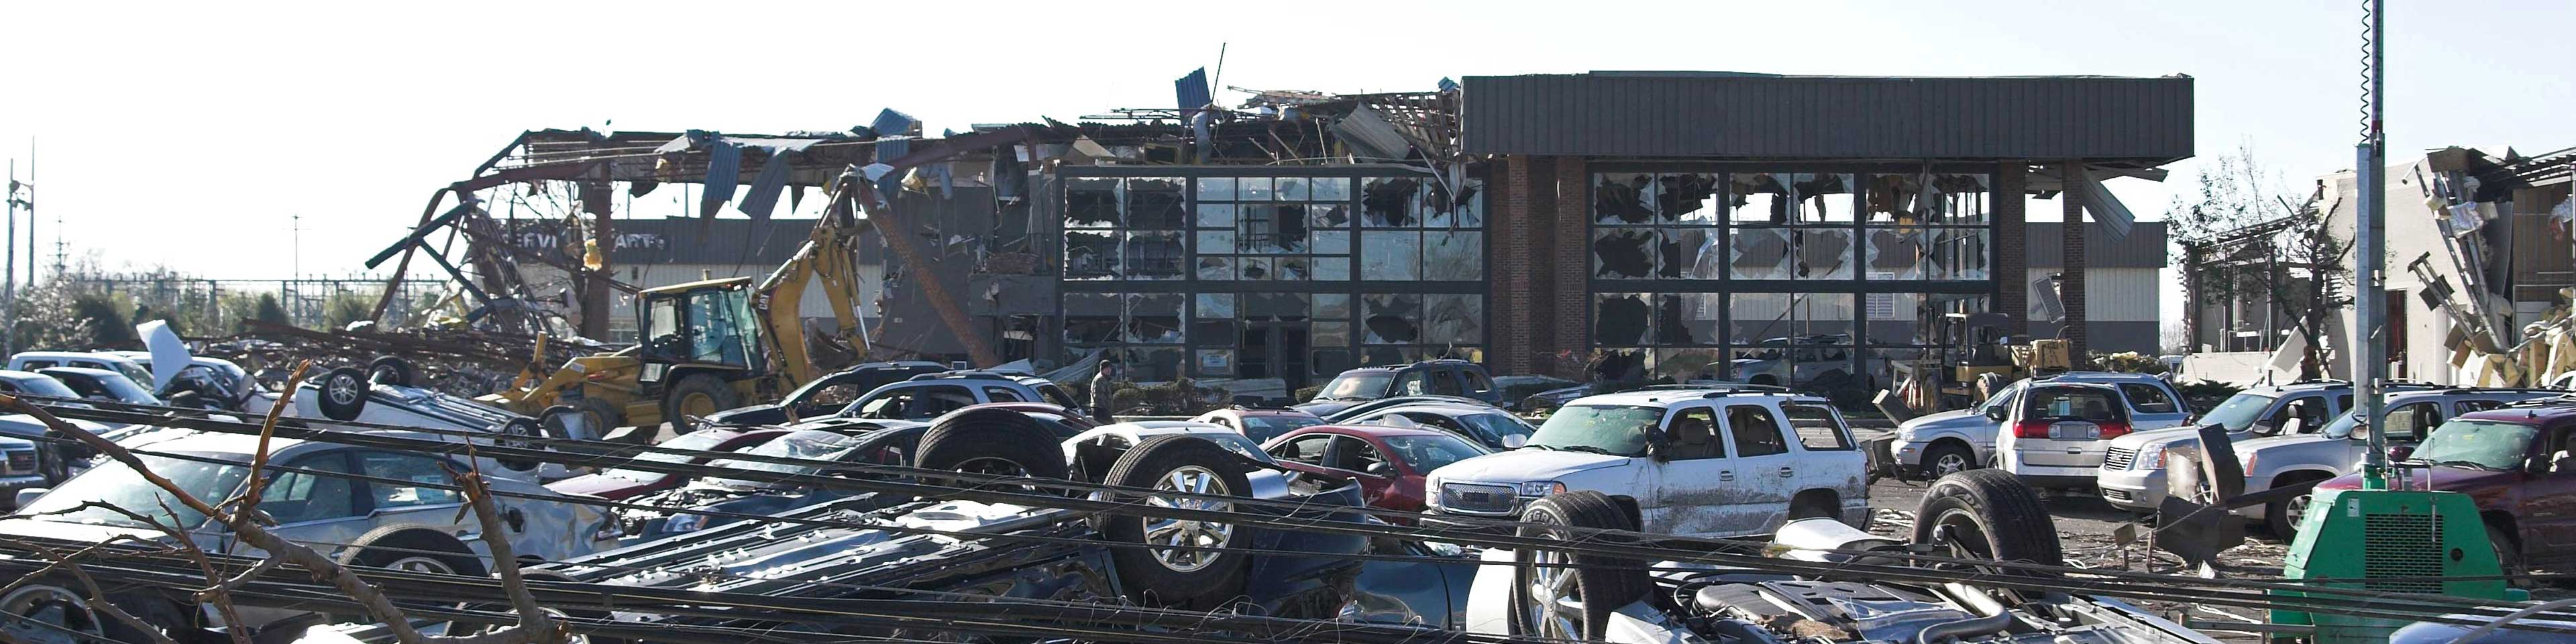 Cars and building destroyed by storm